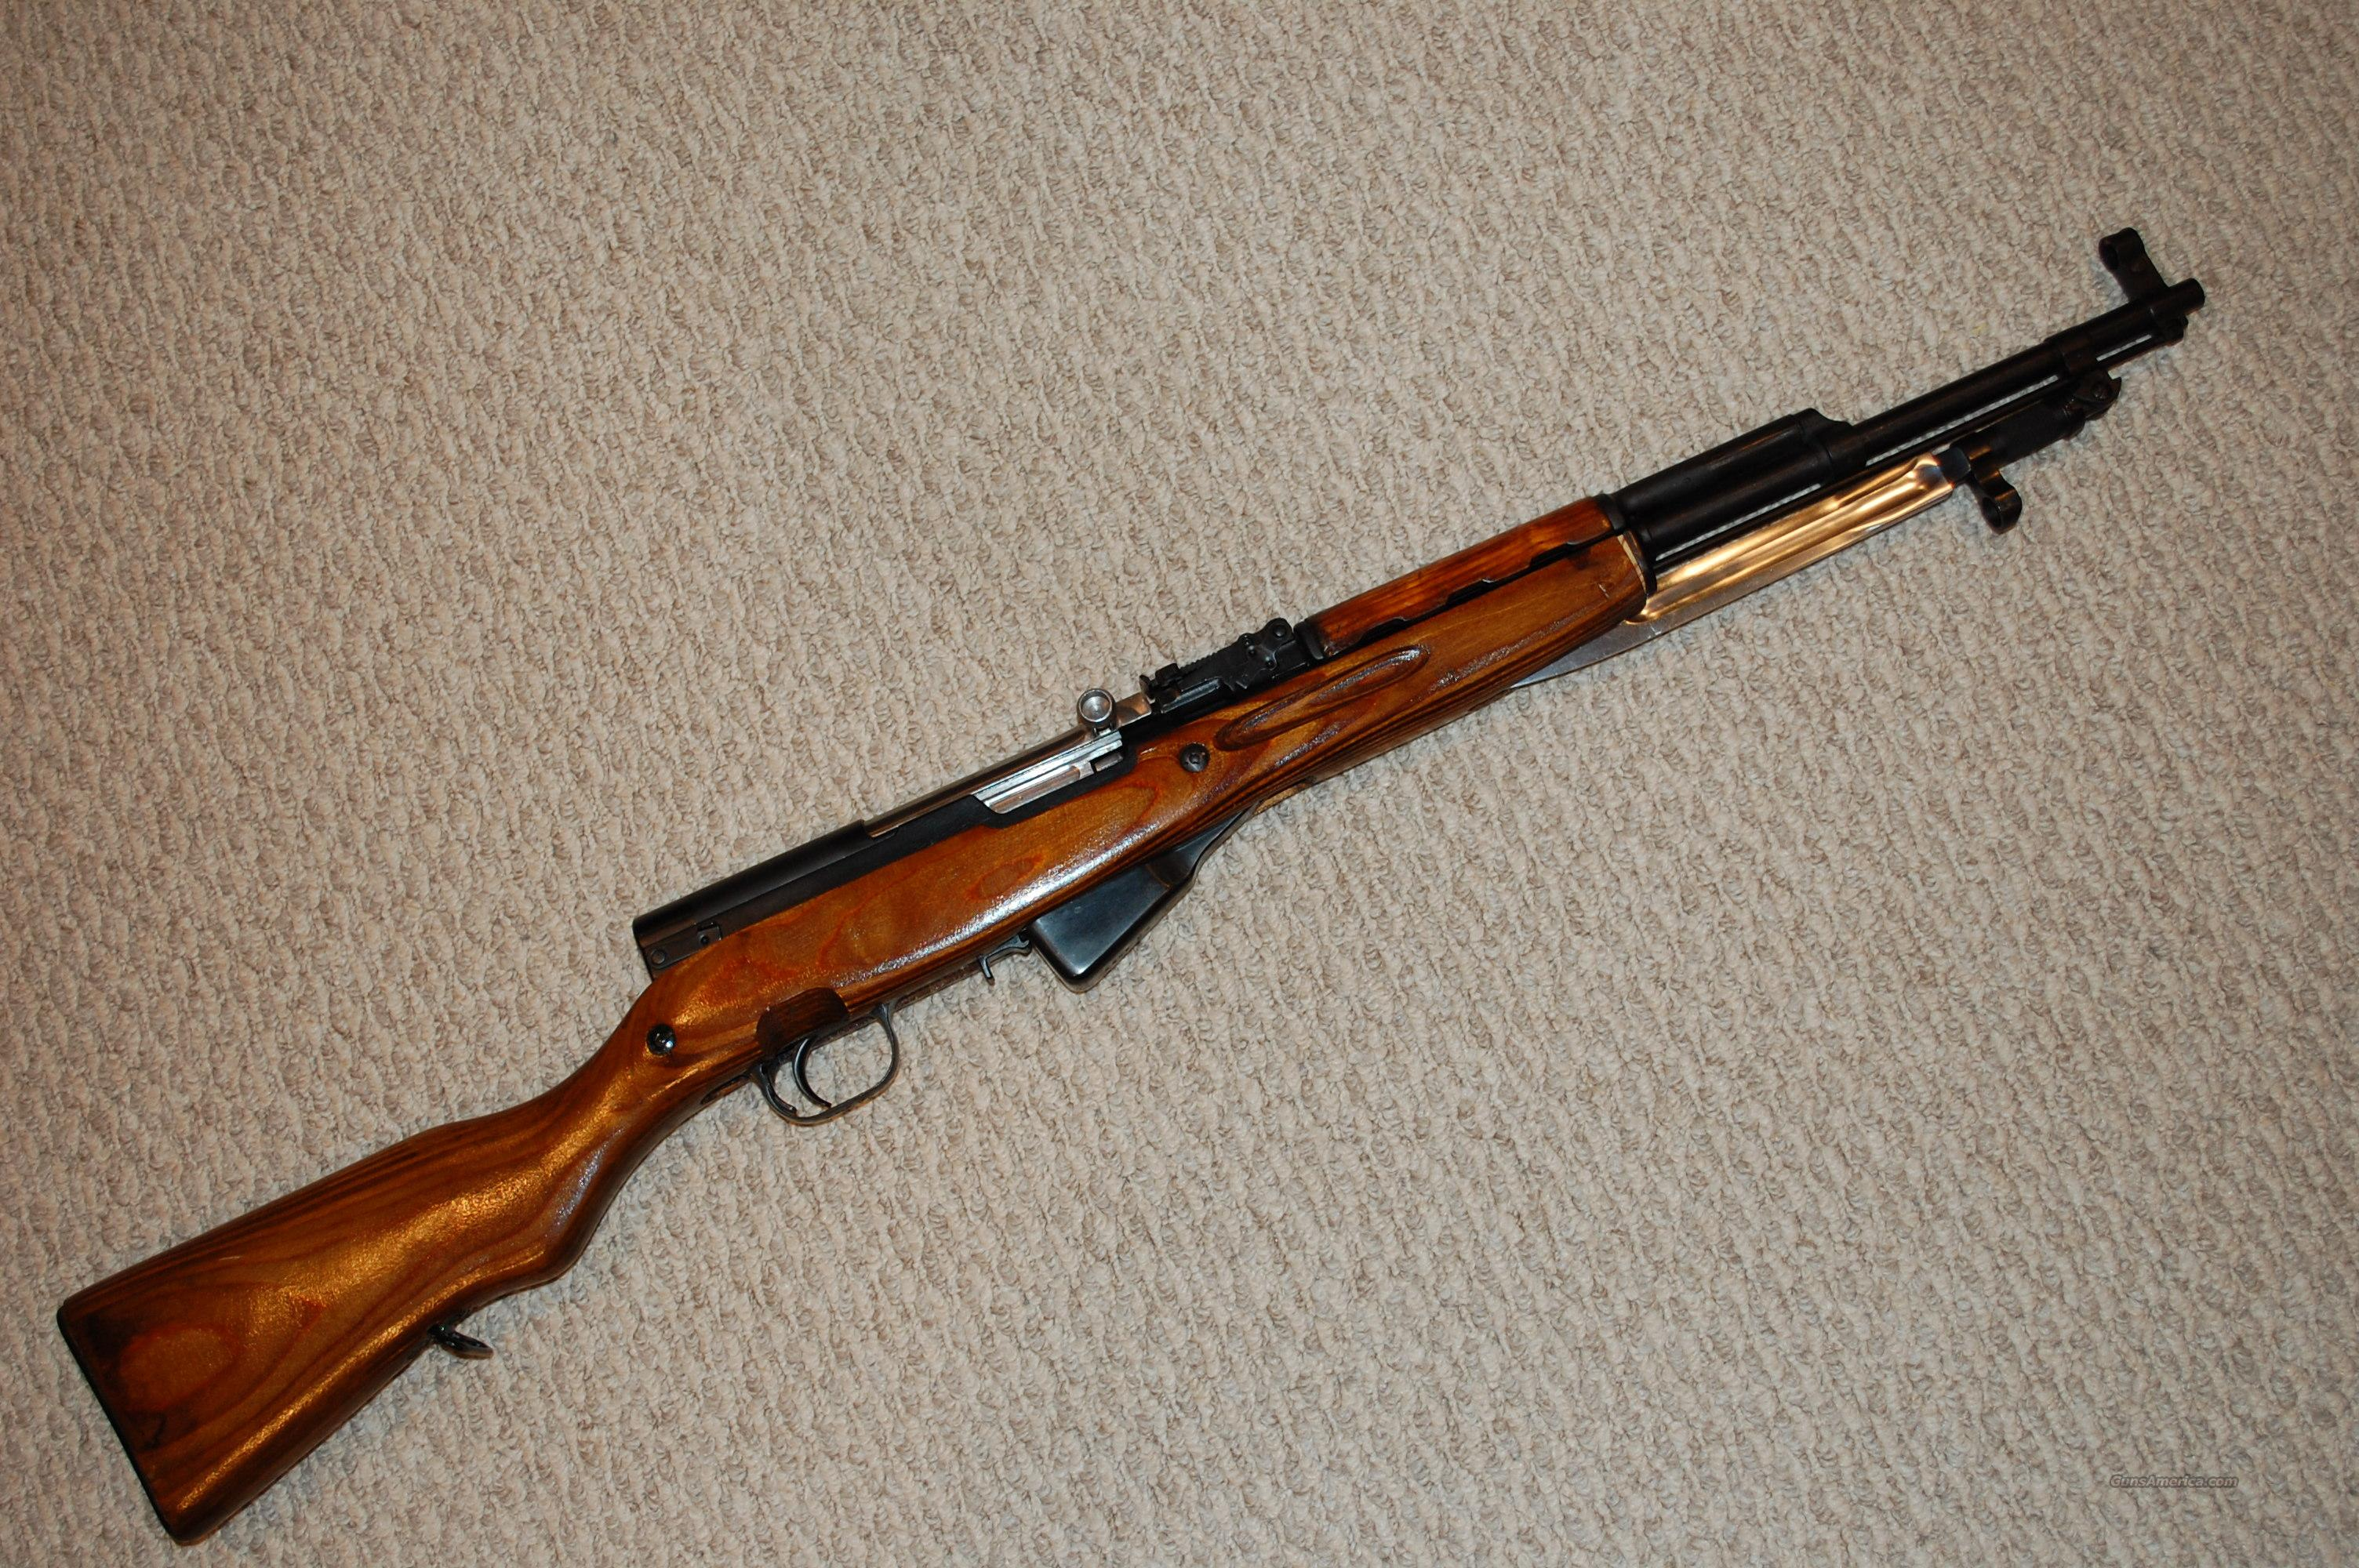 Soviet Sks Images - Reverse Search